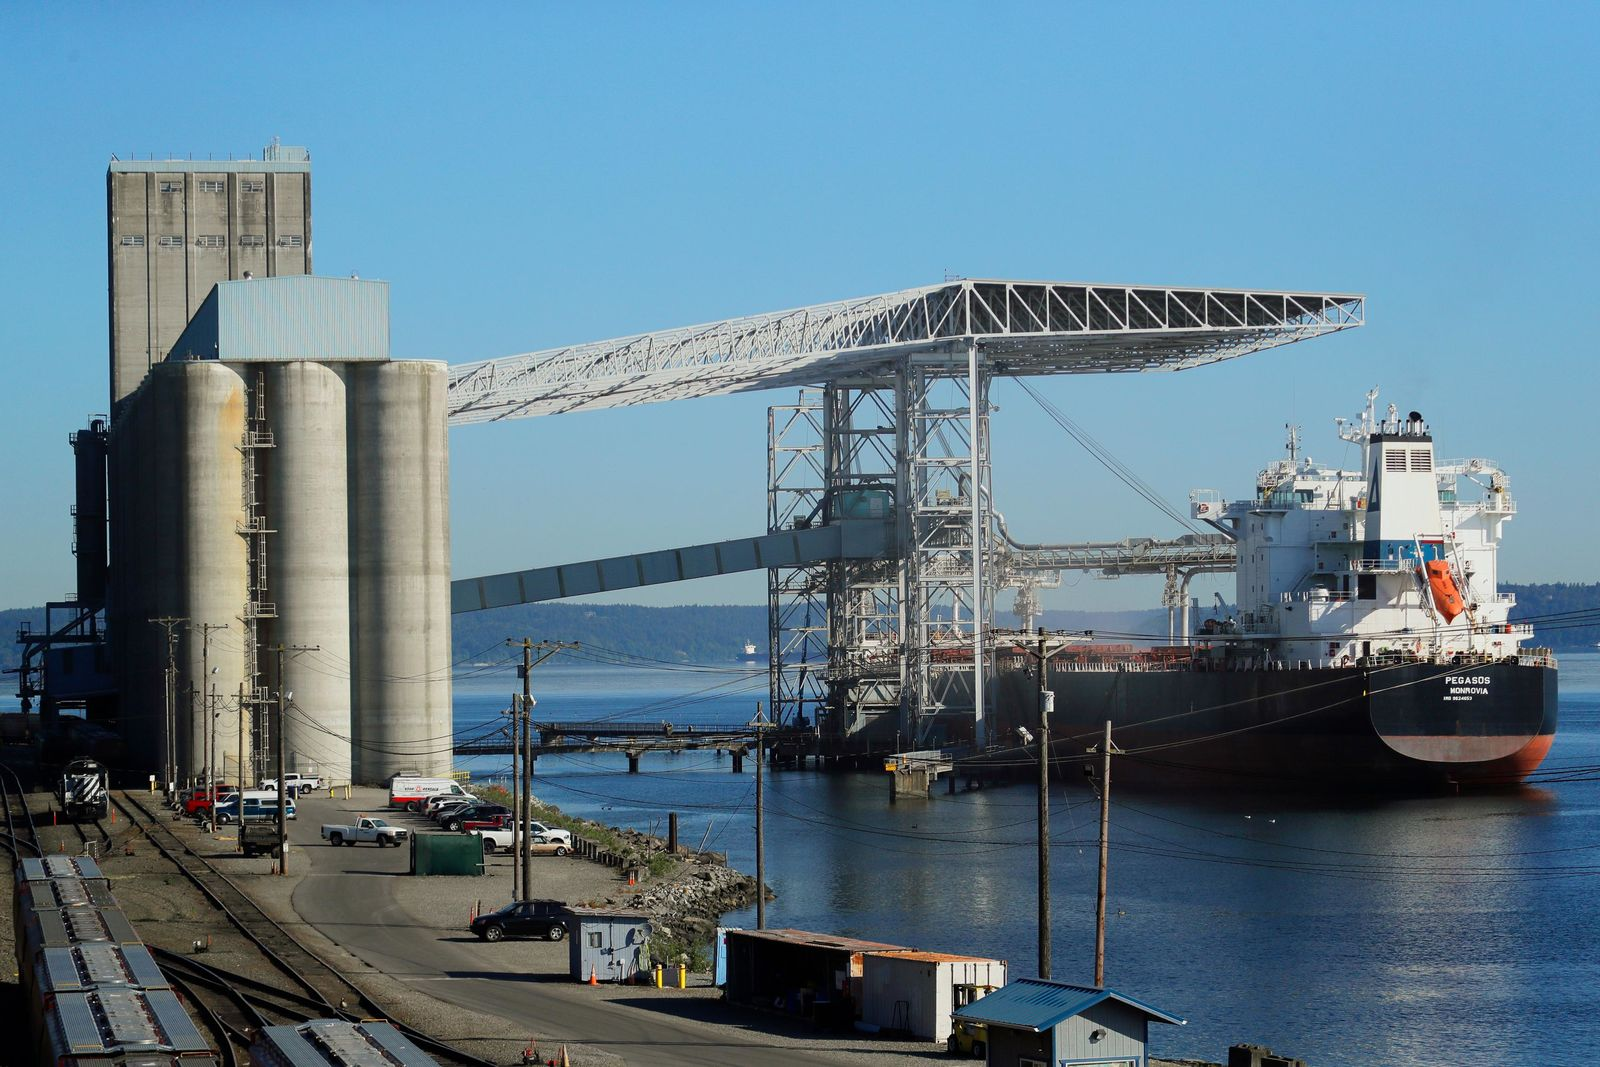 FILE - In this May 10, 2019, file photo a bulk carrier ship is loaded at the Temco grain terminal at the Port of Tacoma in Tacoma, Wash. (AP Photo/Ted S. Warren, File)